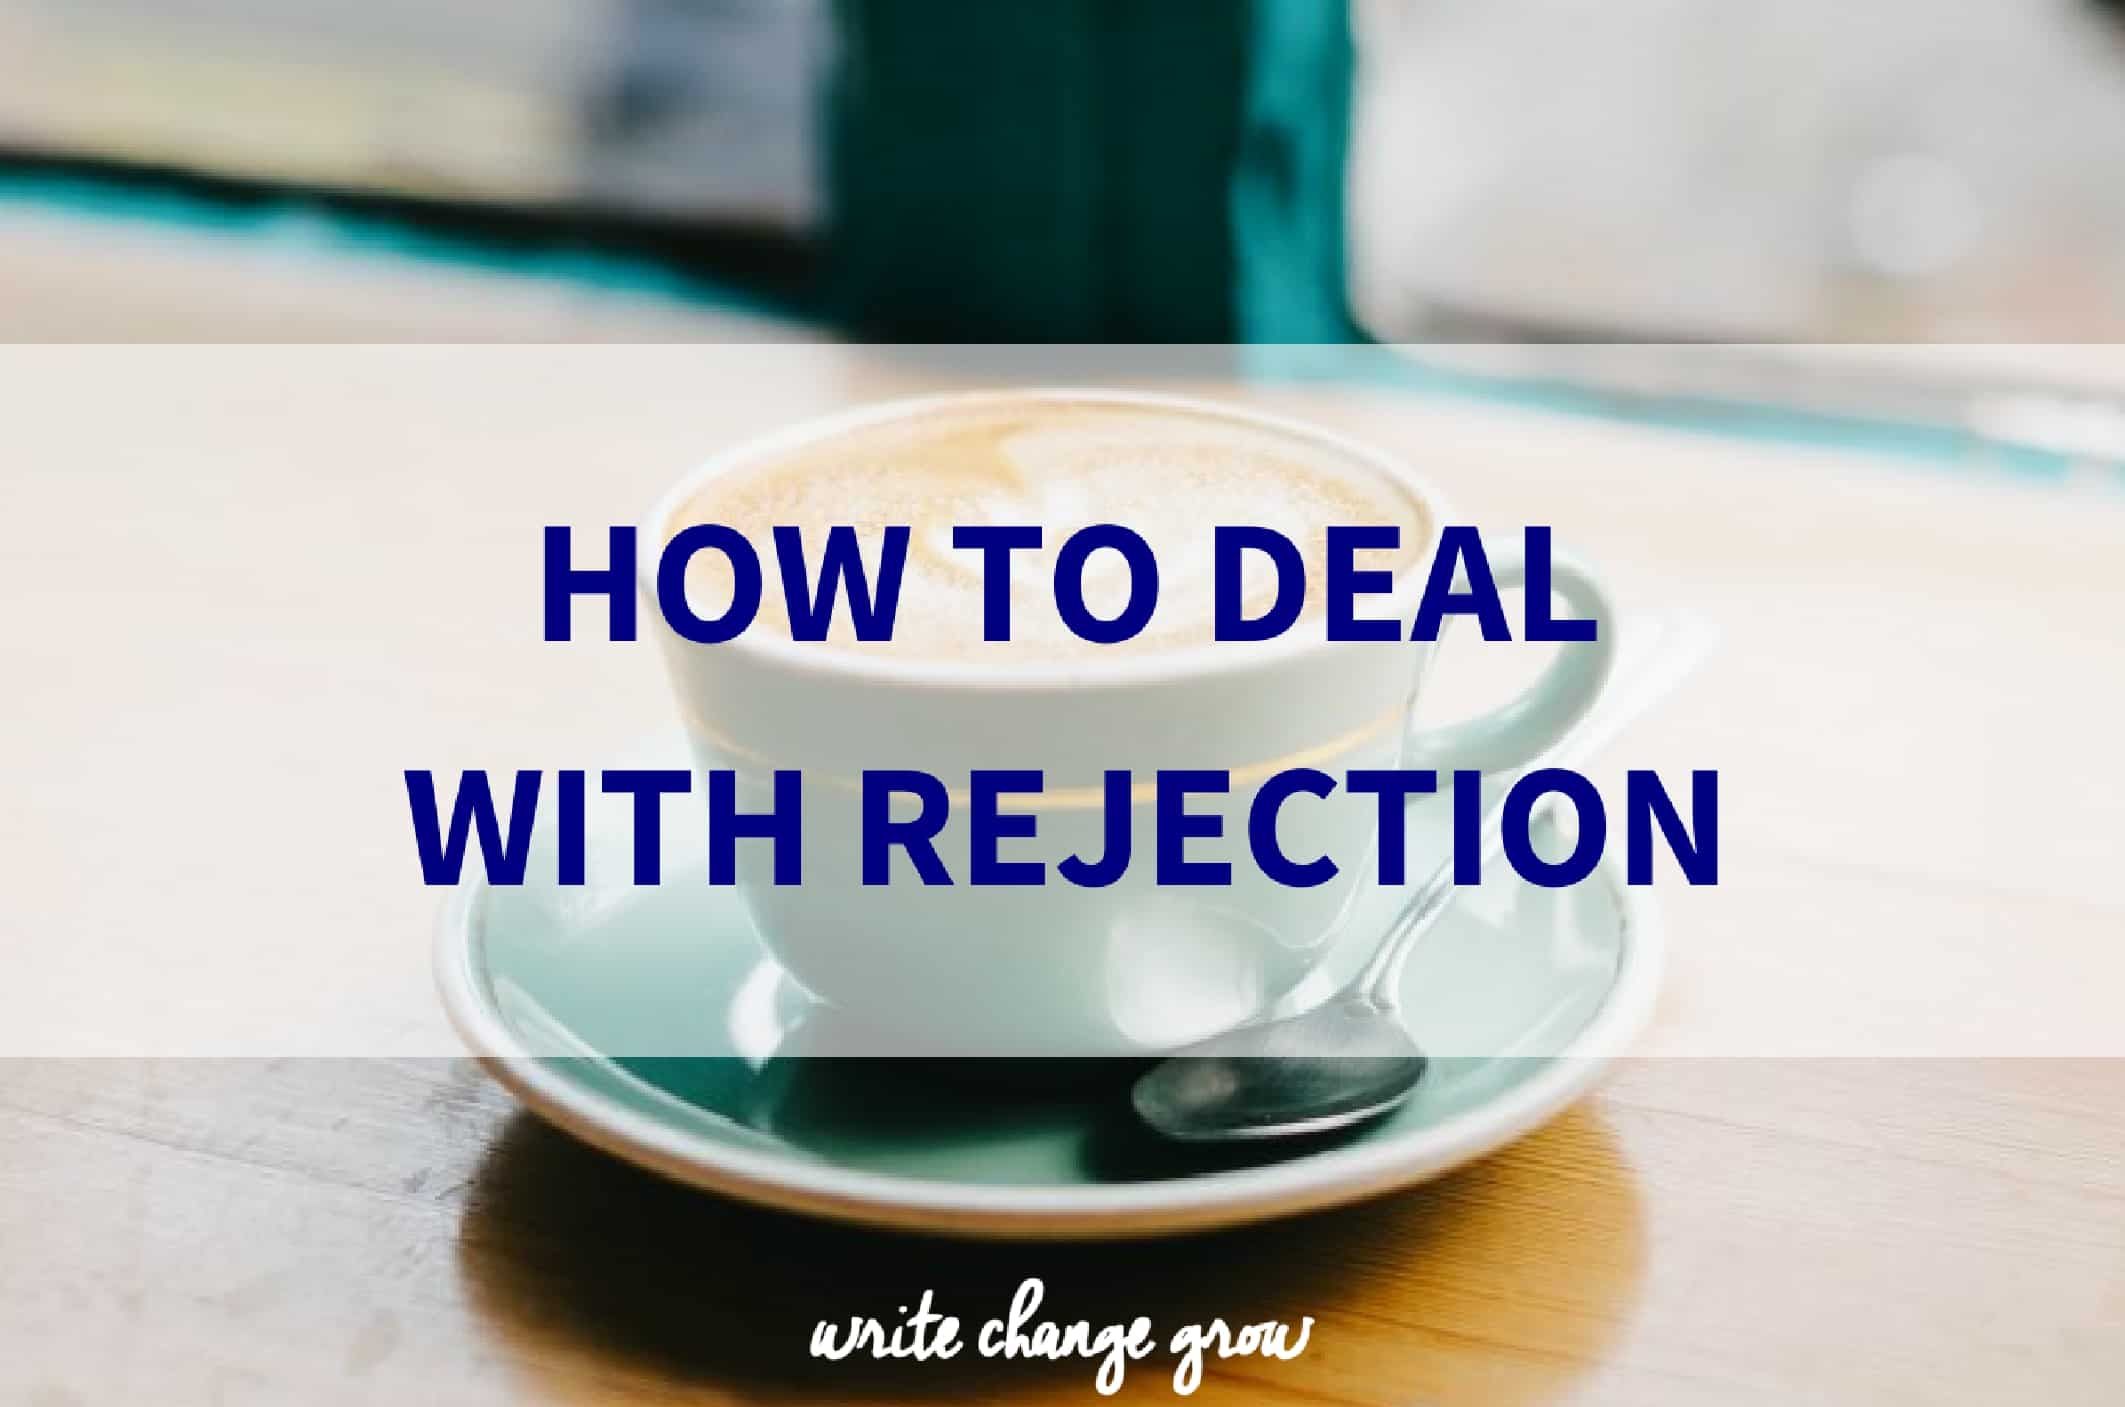 Tips on how to deal with rejection.